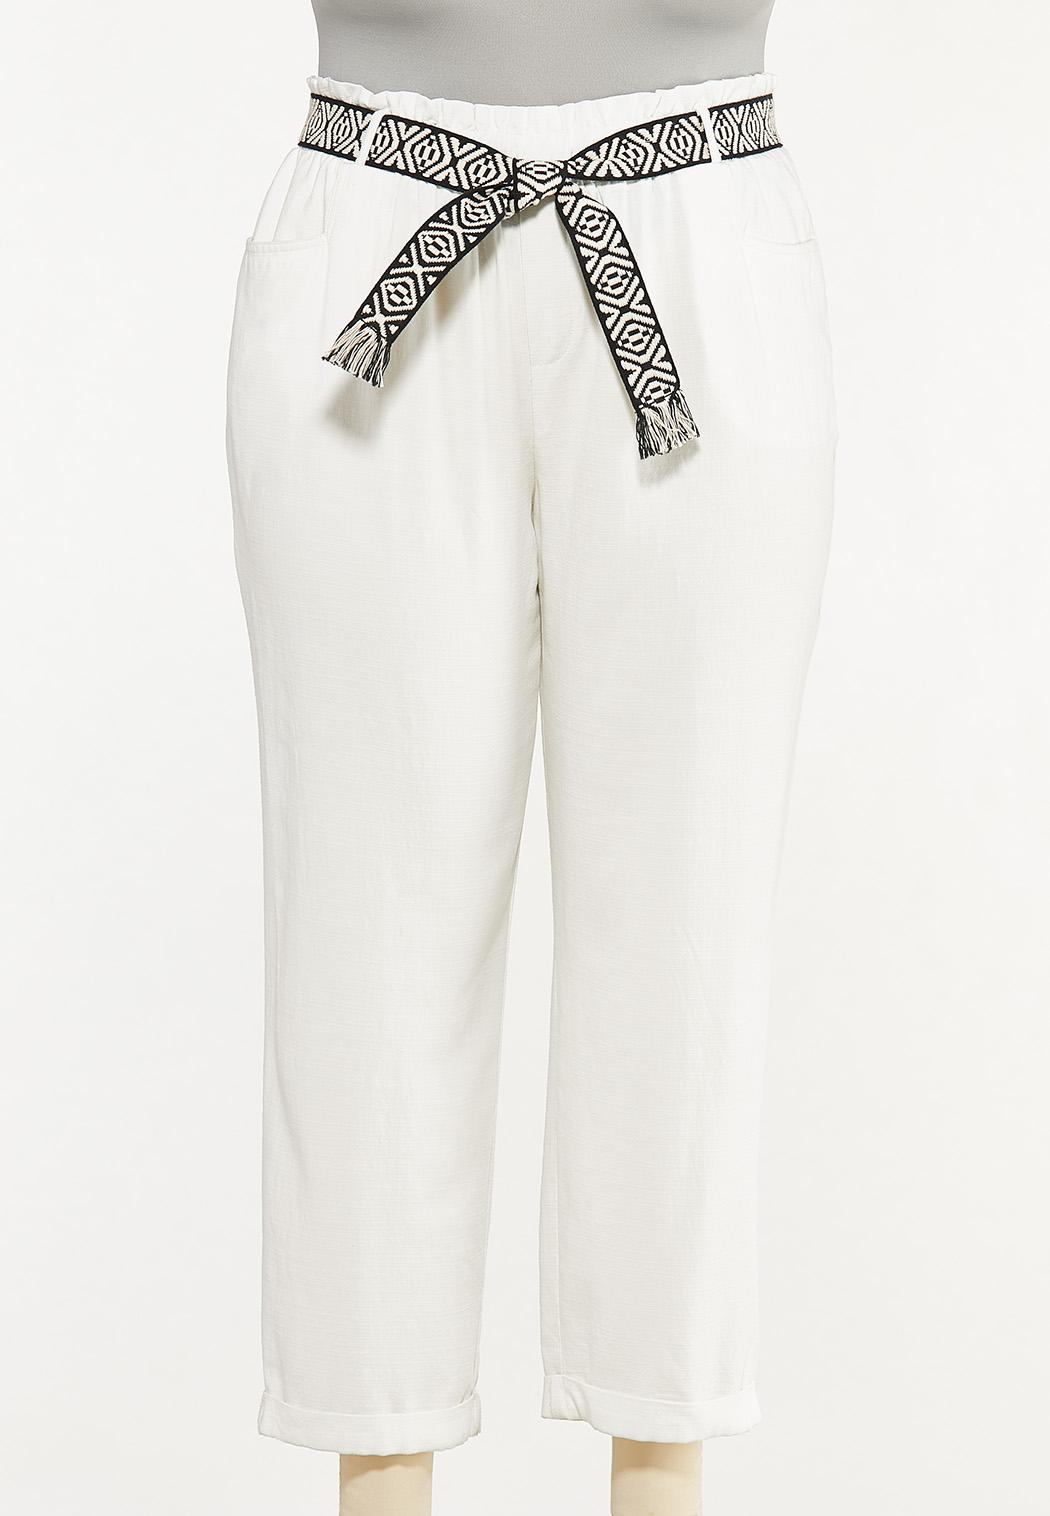 Plus Size Breezy White Belted Pants